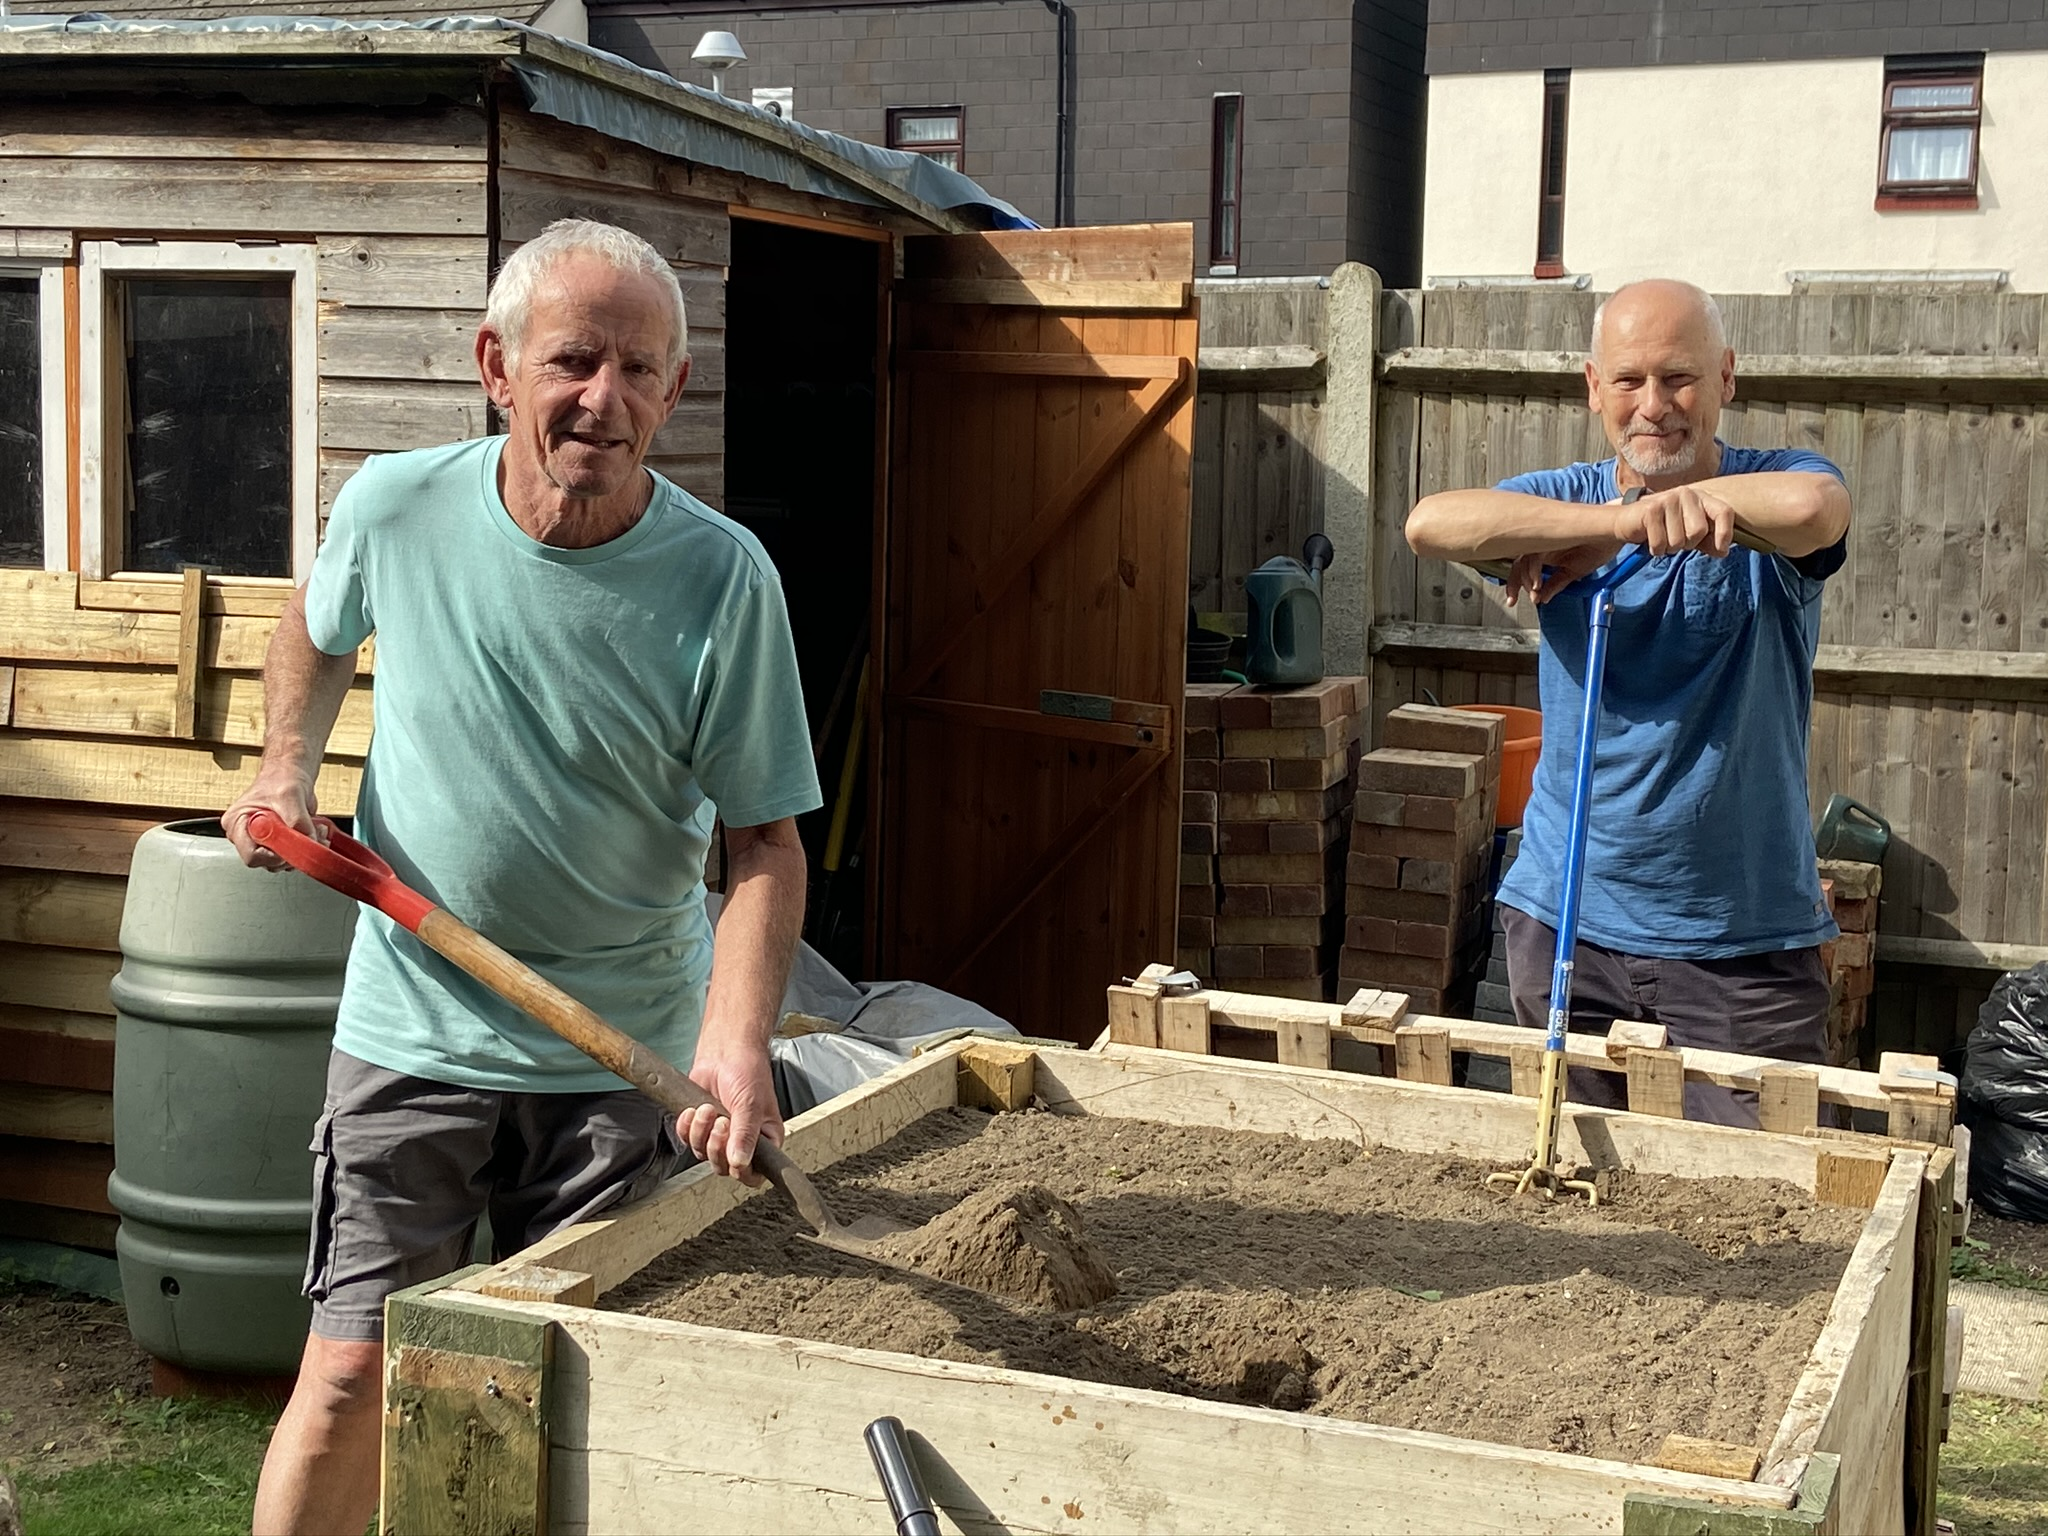 Golding Homes residents John Rose and Vincent Jasper in the community garden at Titchfield Close, Maidstone